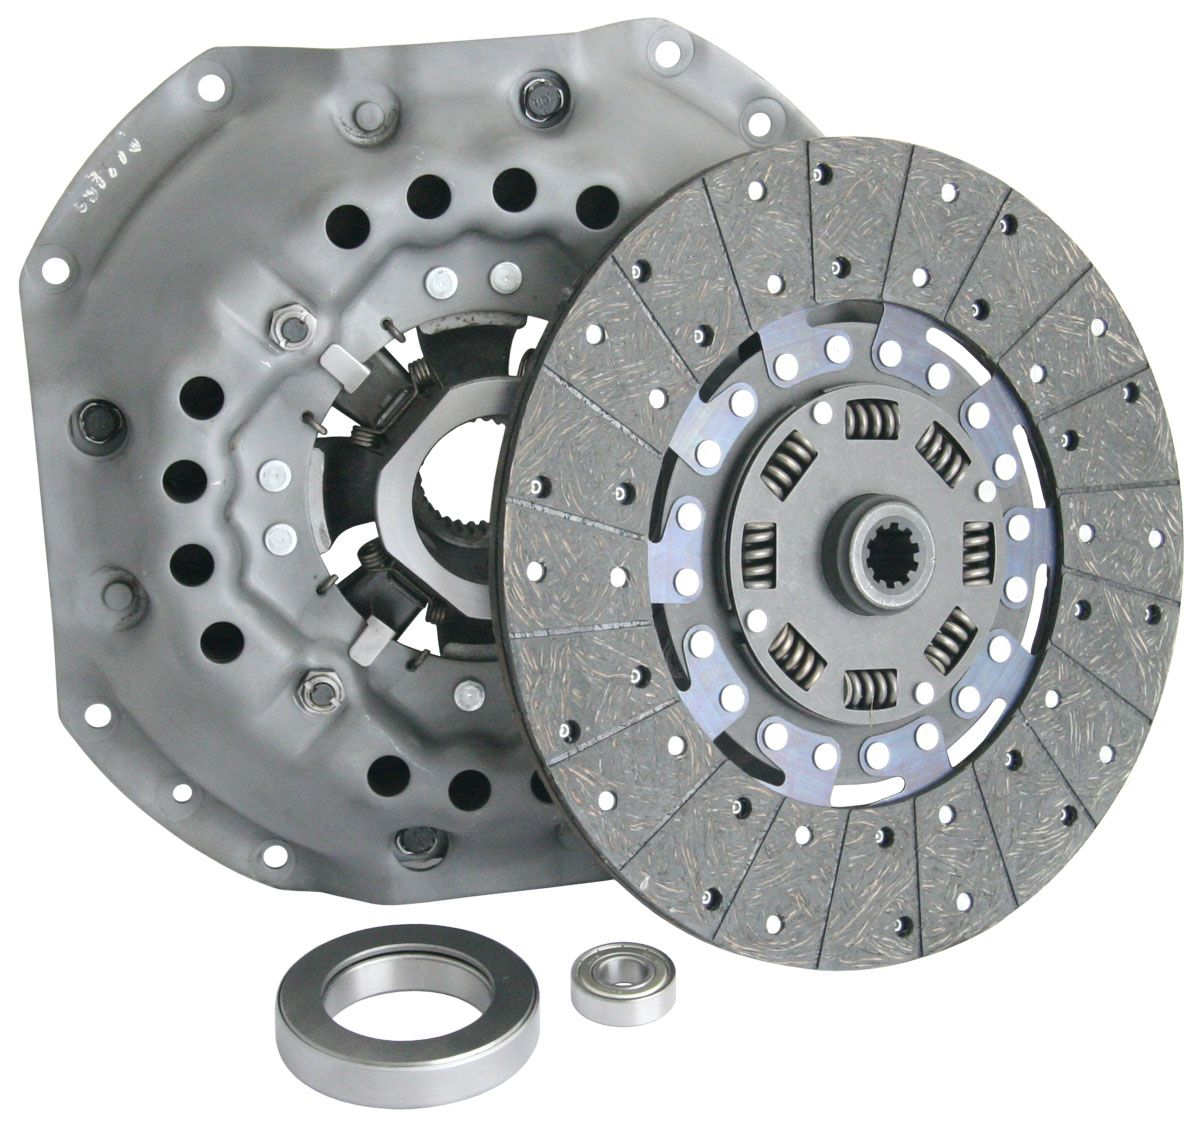 EMMARK NEW HOLLAND CLUTCH KIT SINGLE 13(INCH) 10 SPLINE - (E1ADKN7580B)